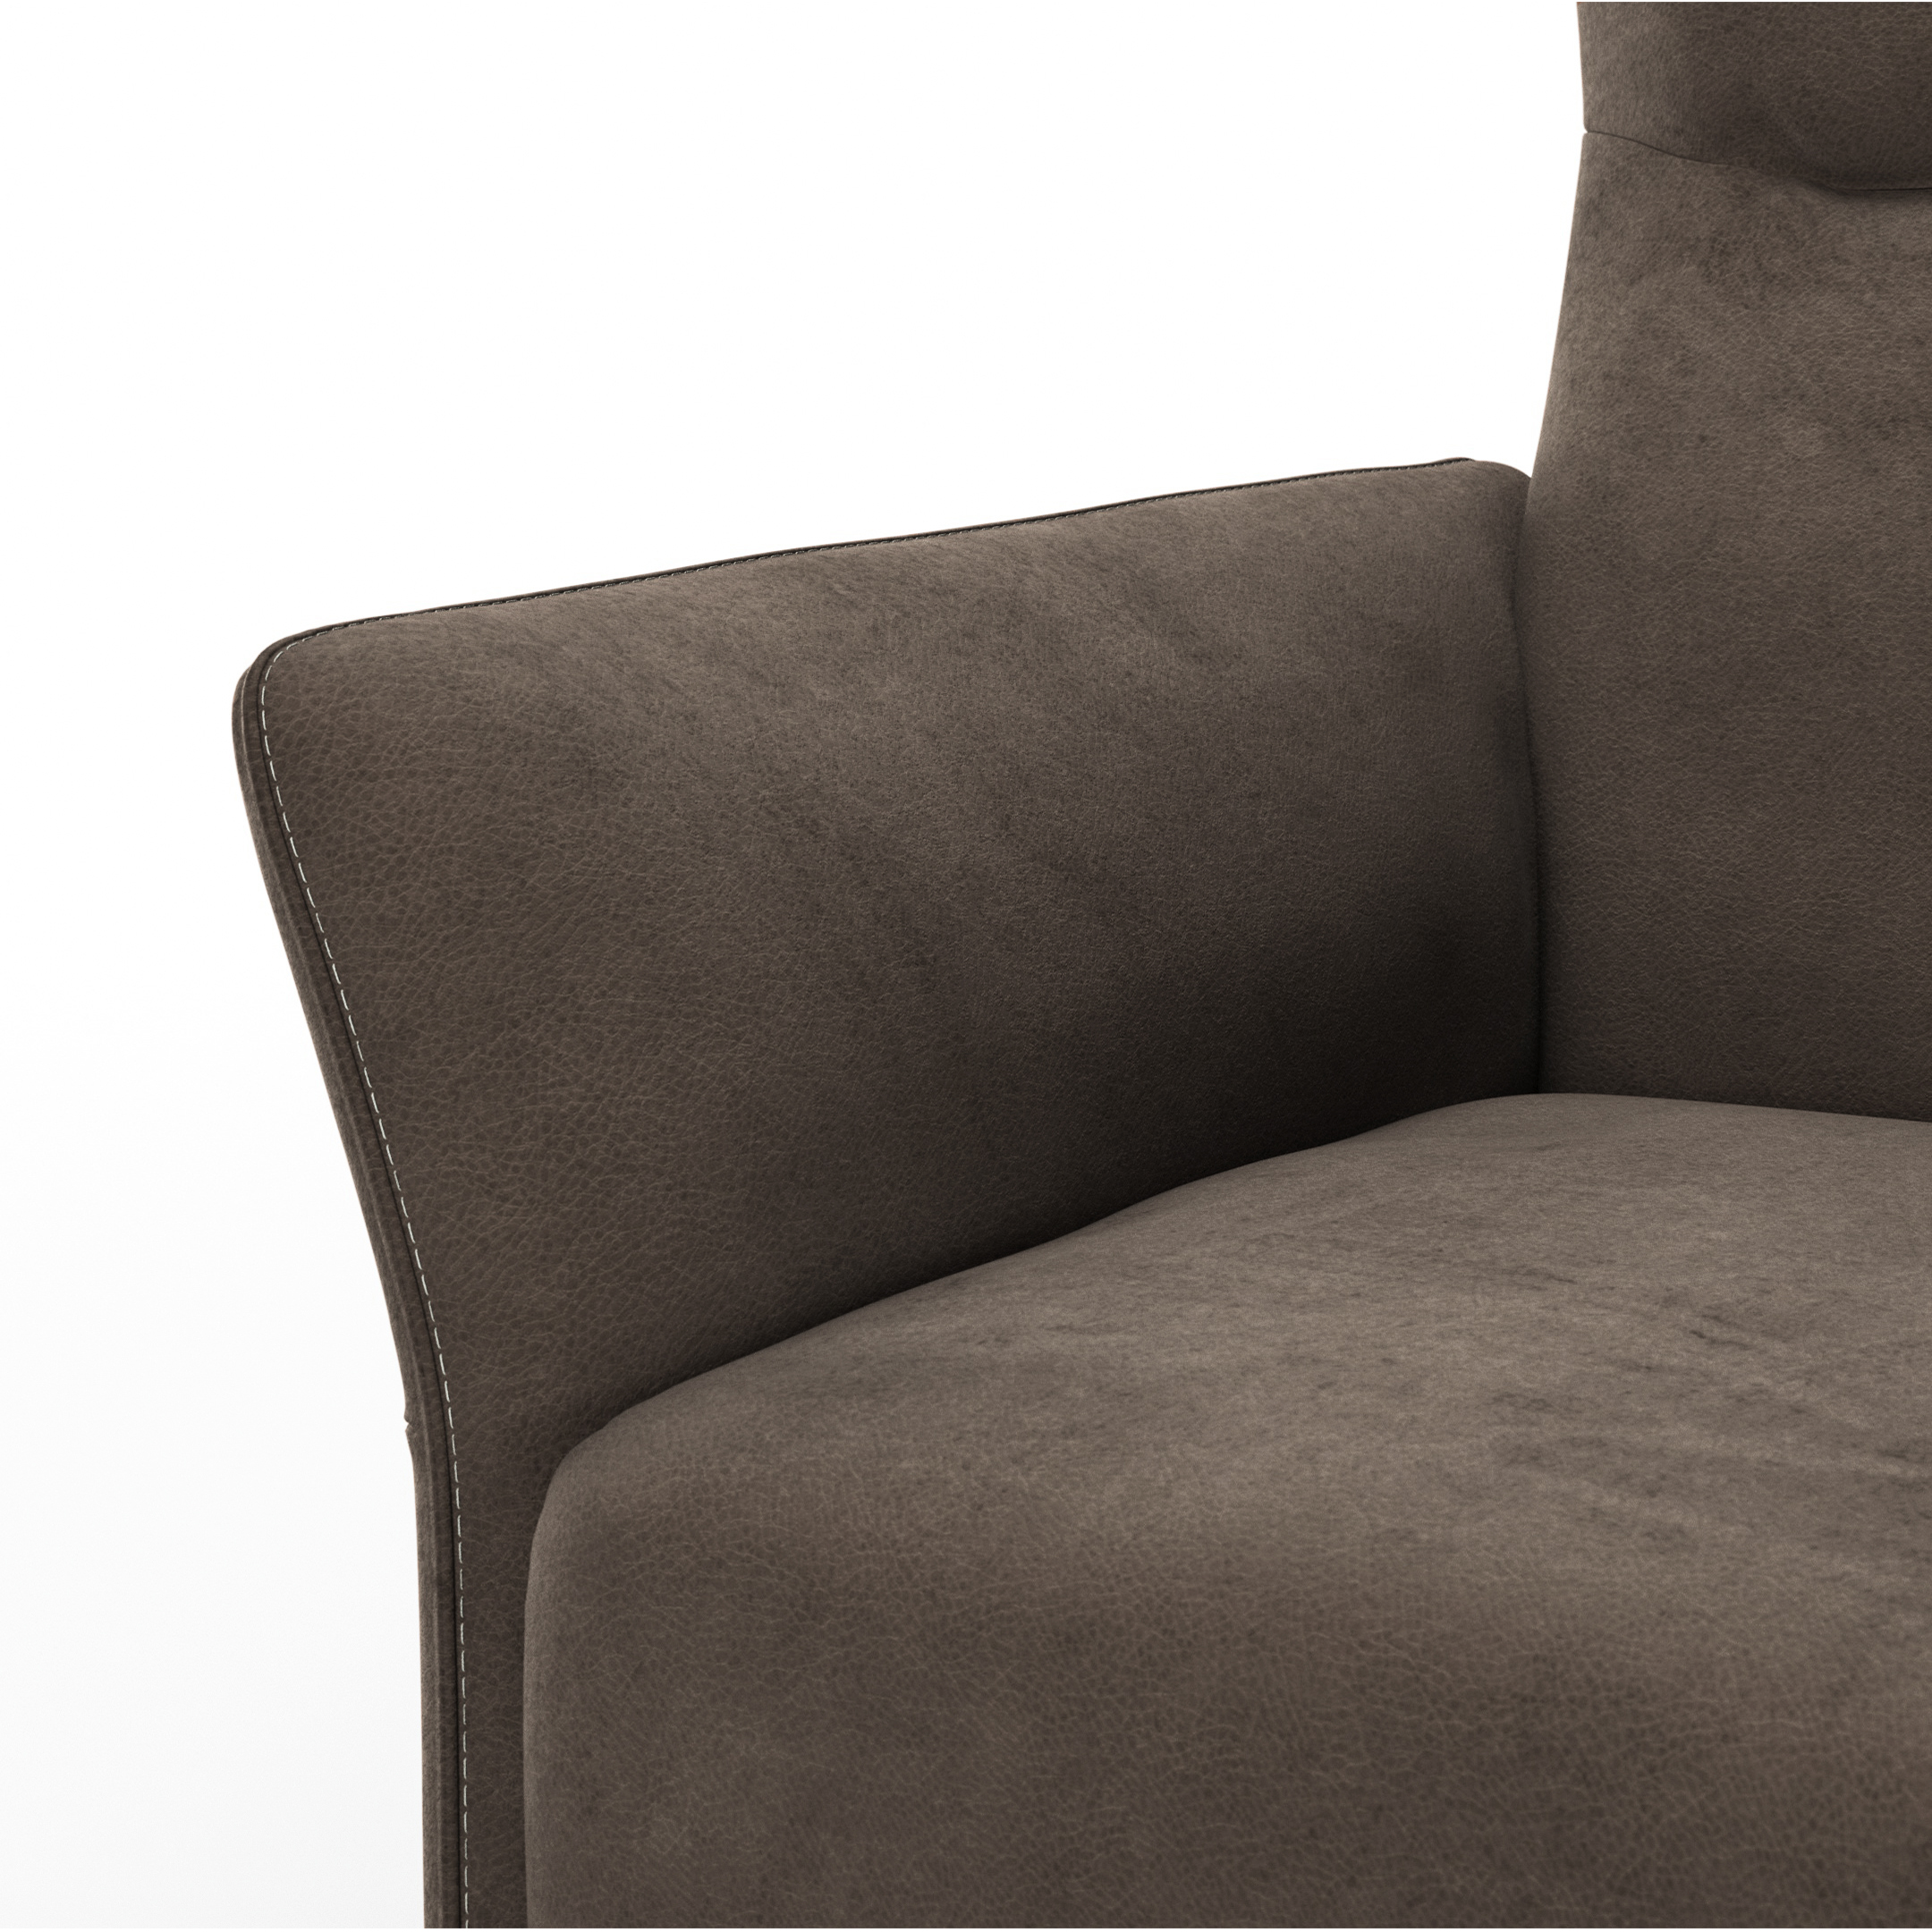 Global Comfort Sessel Rosario detailbild 1 102632 | Homepoet